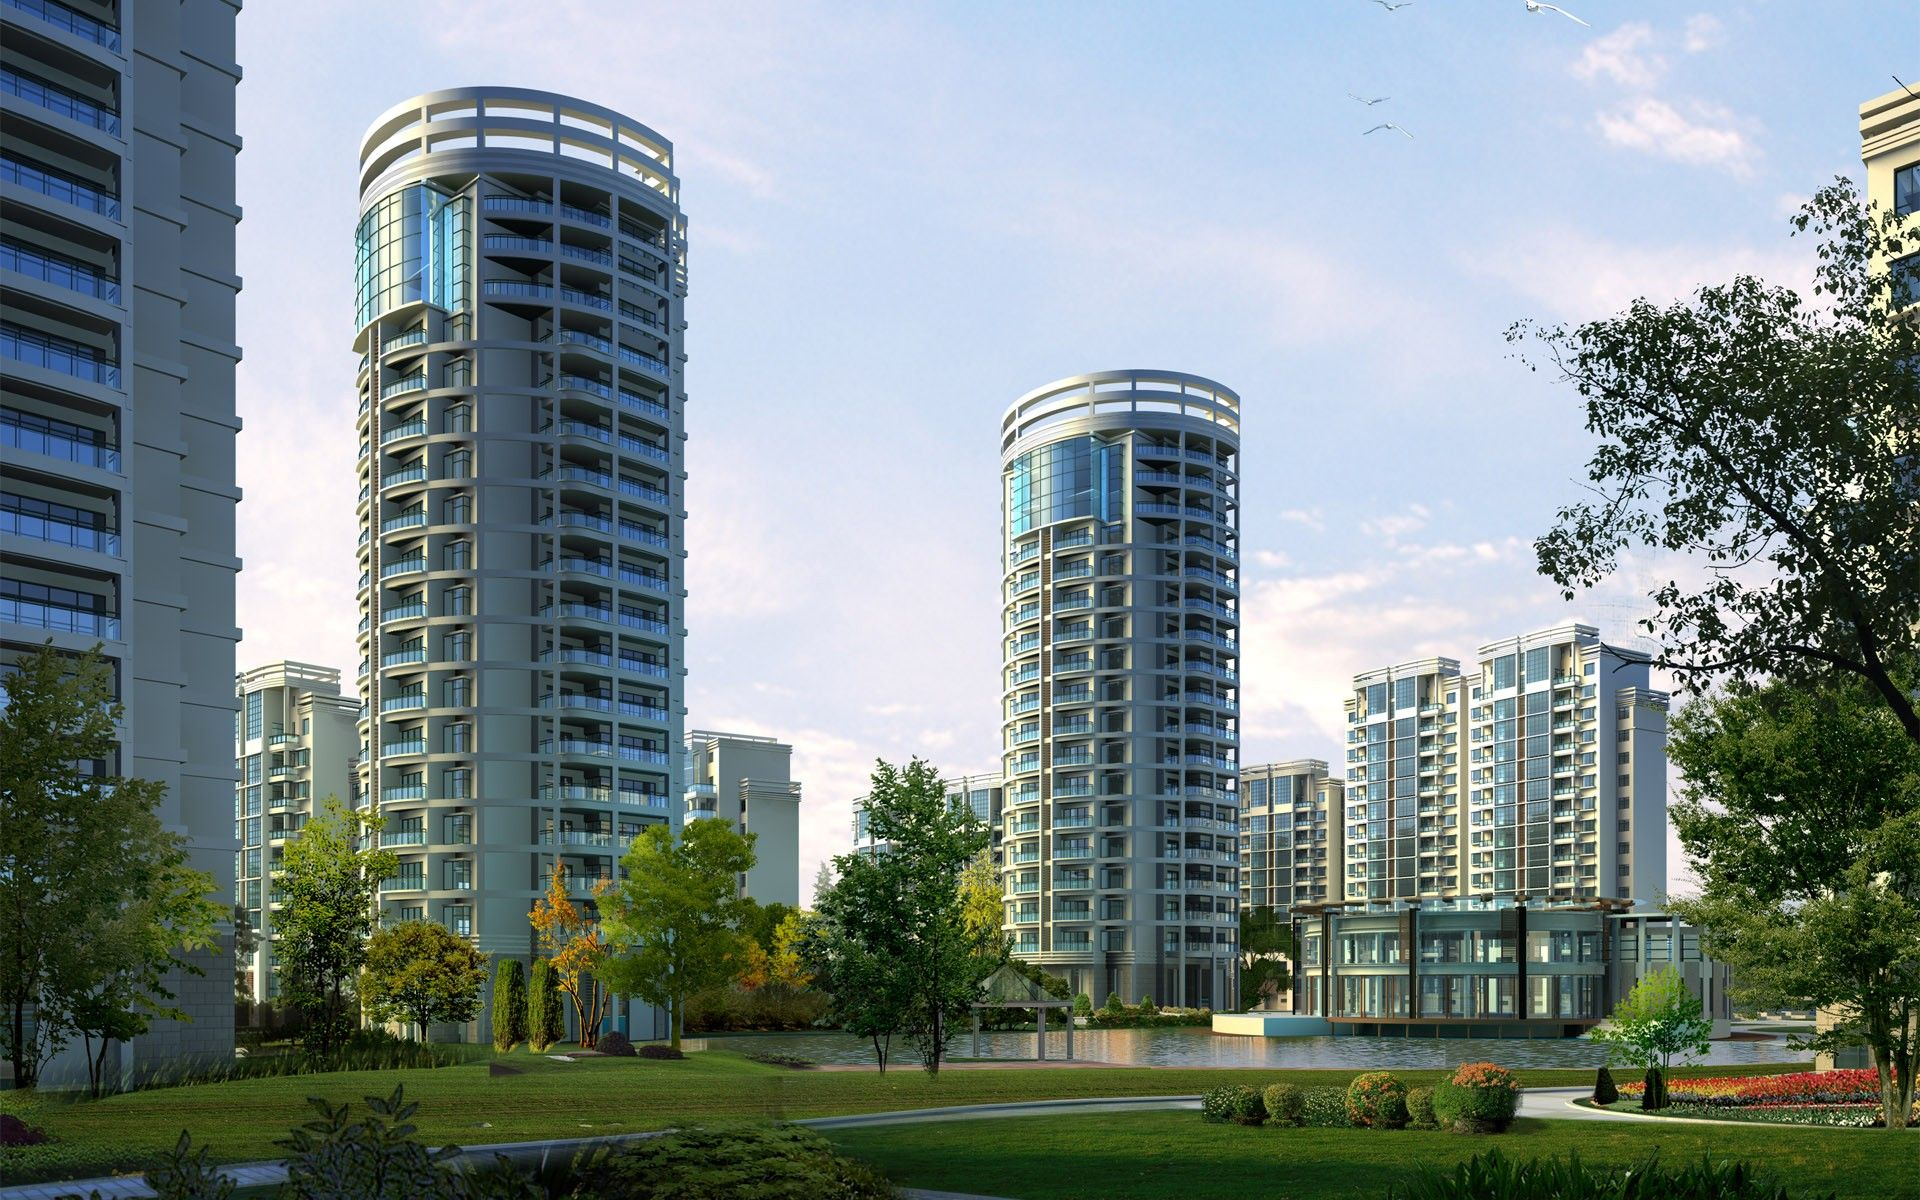 Download Wallpaper Multi-storey residential buildings of the modern city -  1920x1200